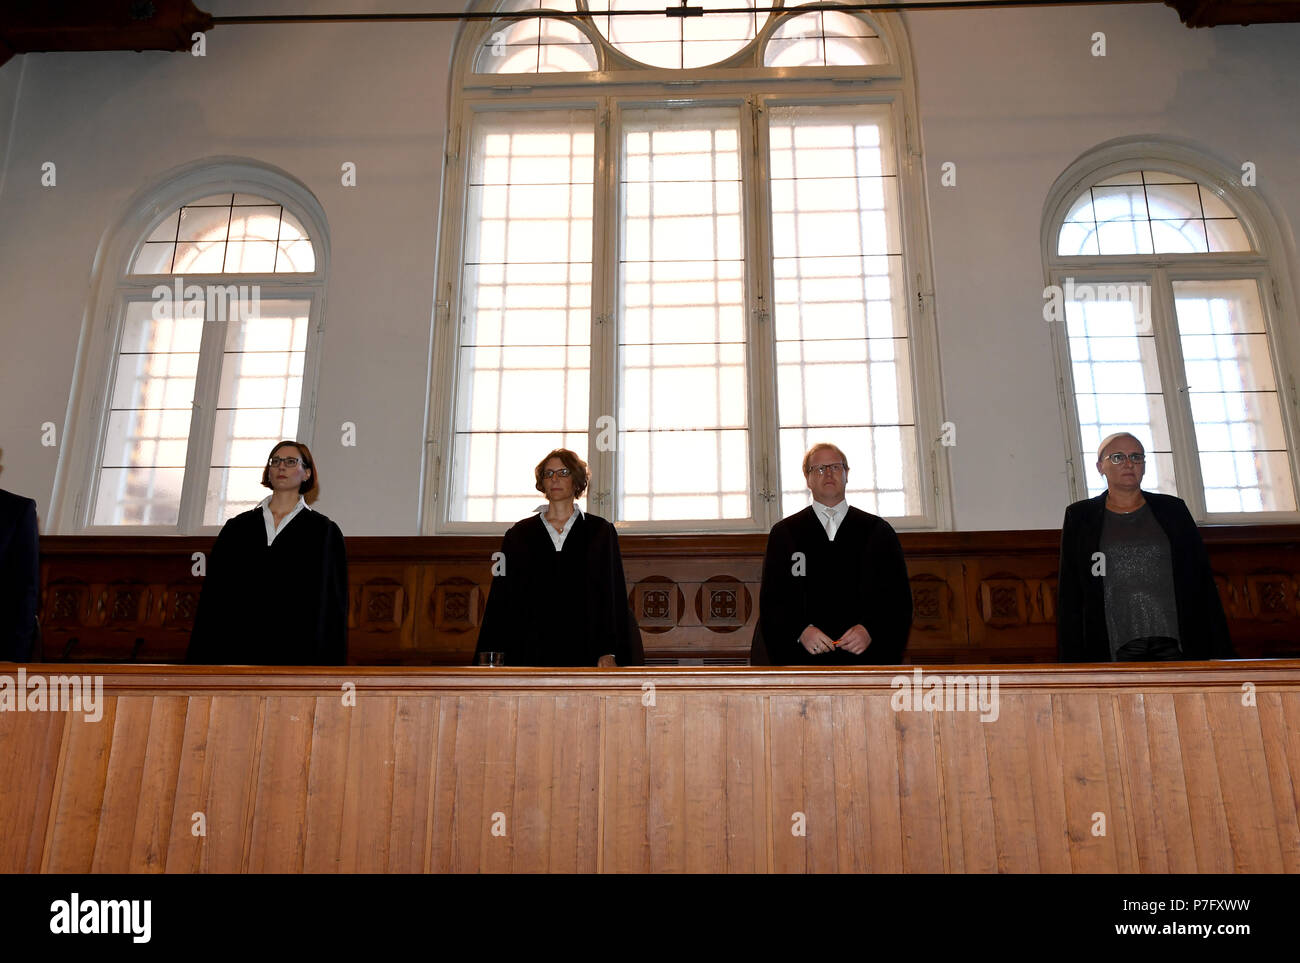 Flensburg, Germany. 06th July, 2018. The judges in the trial against two defendants indicted for murder standing in front of windows by their bench. The district court is pronouncing their verdict in the murder trial against the two 20-year-olds, who woke up a coeval in the night before Easter Sunday 2017 and stabbed him by the front door. Credit: Carsten Rehder/dpa/Alamy Live News - Stock Image